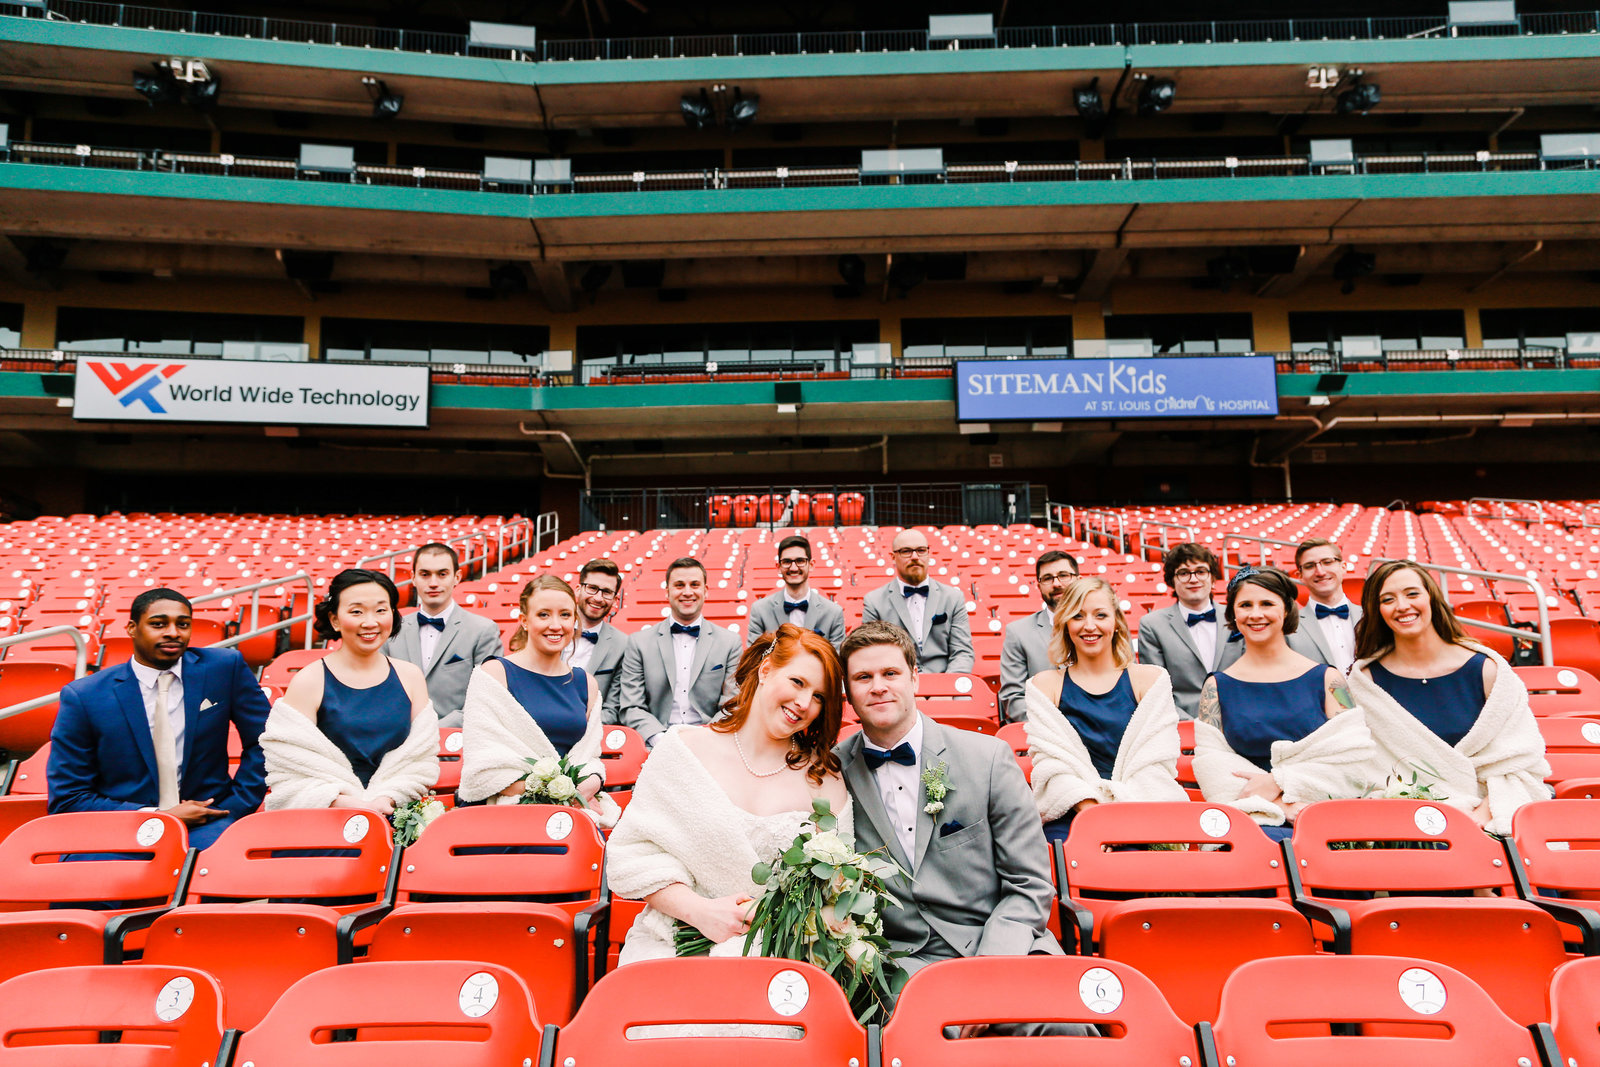 This wedding party ground together in the red seats of Busch Stadium with Bride and Groom in the row in front of them.